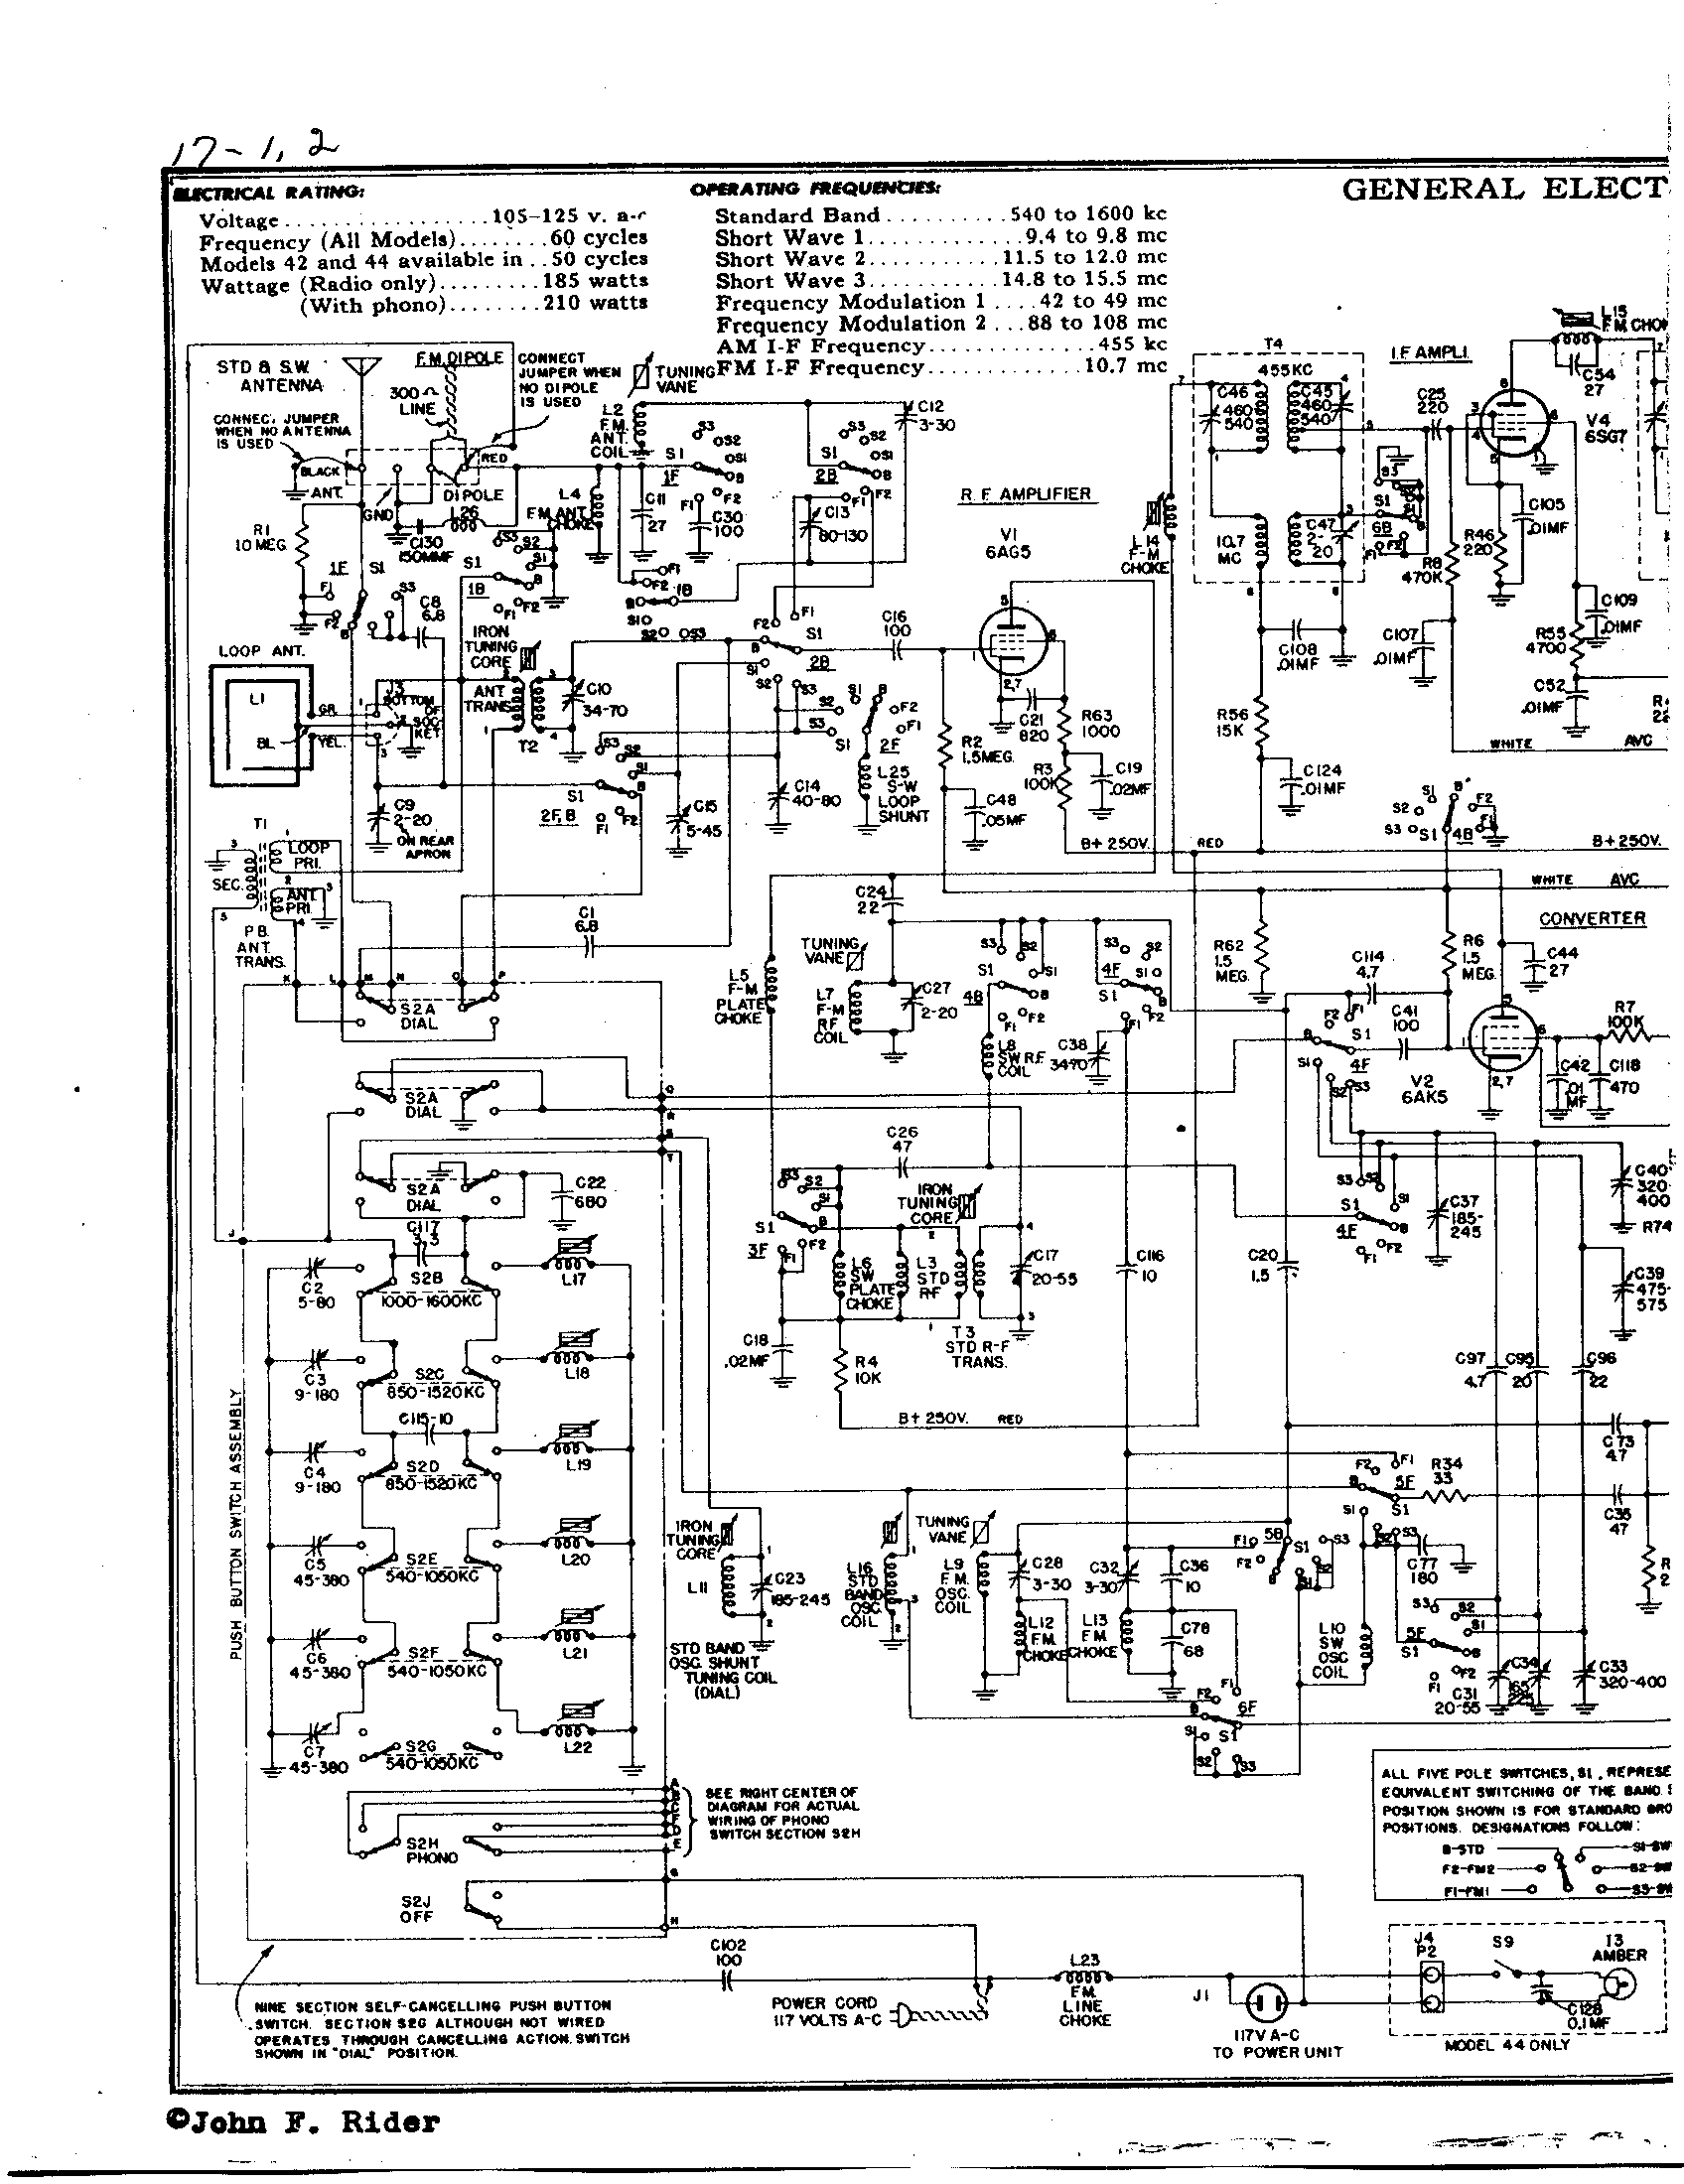 General Electric Co 45